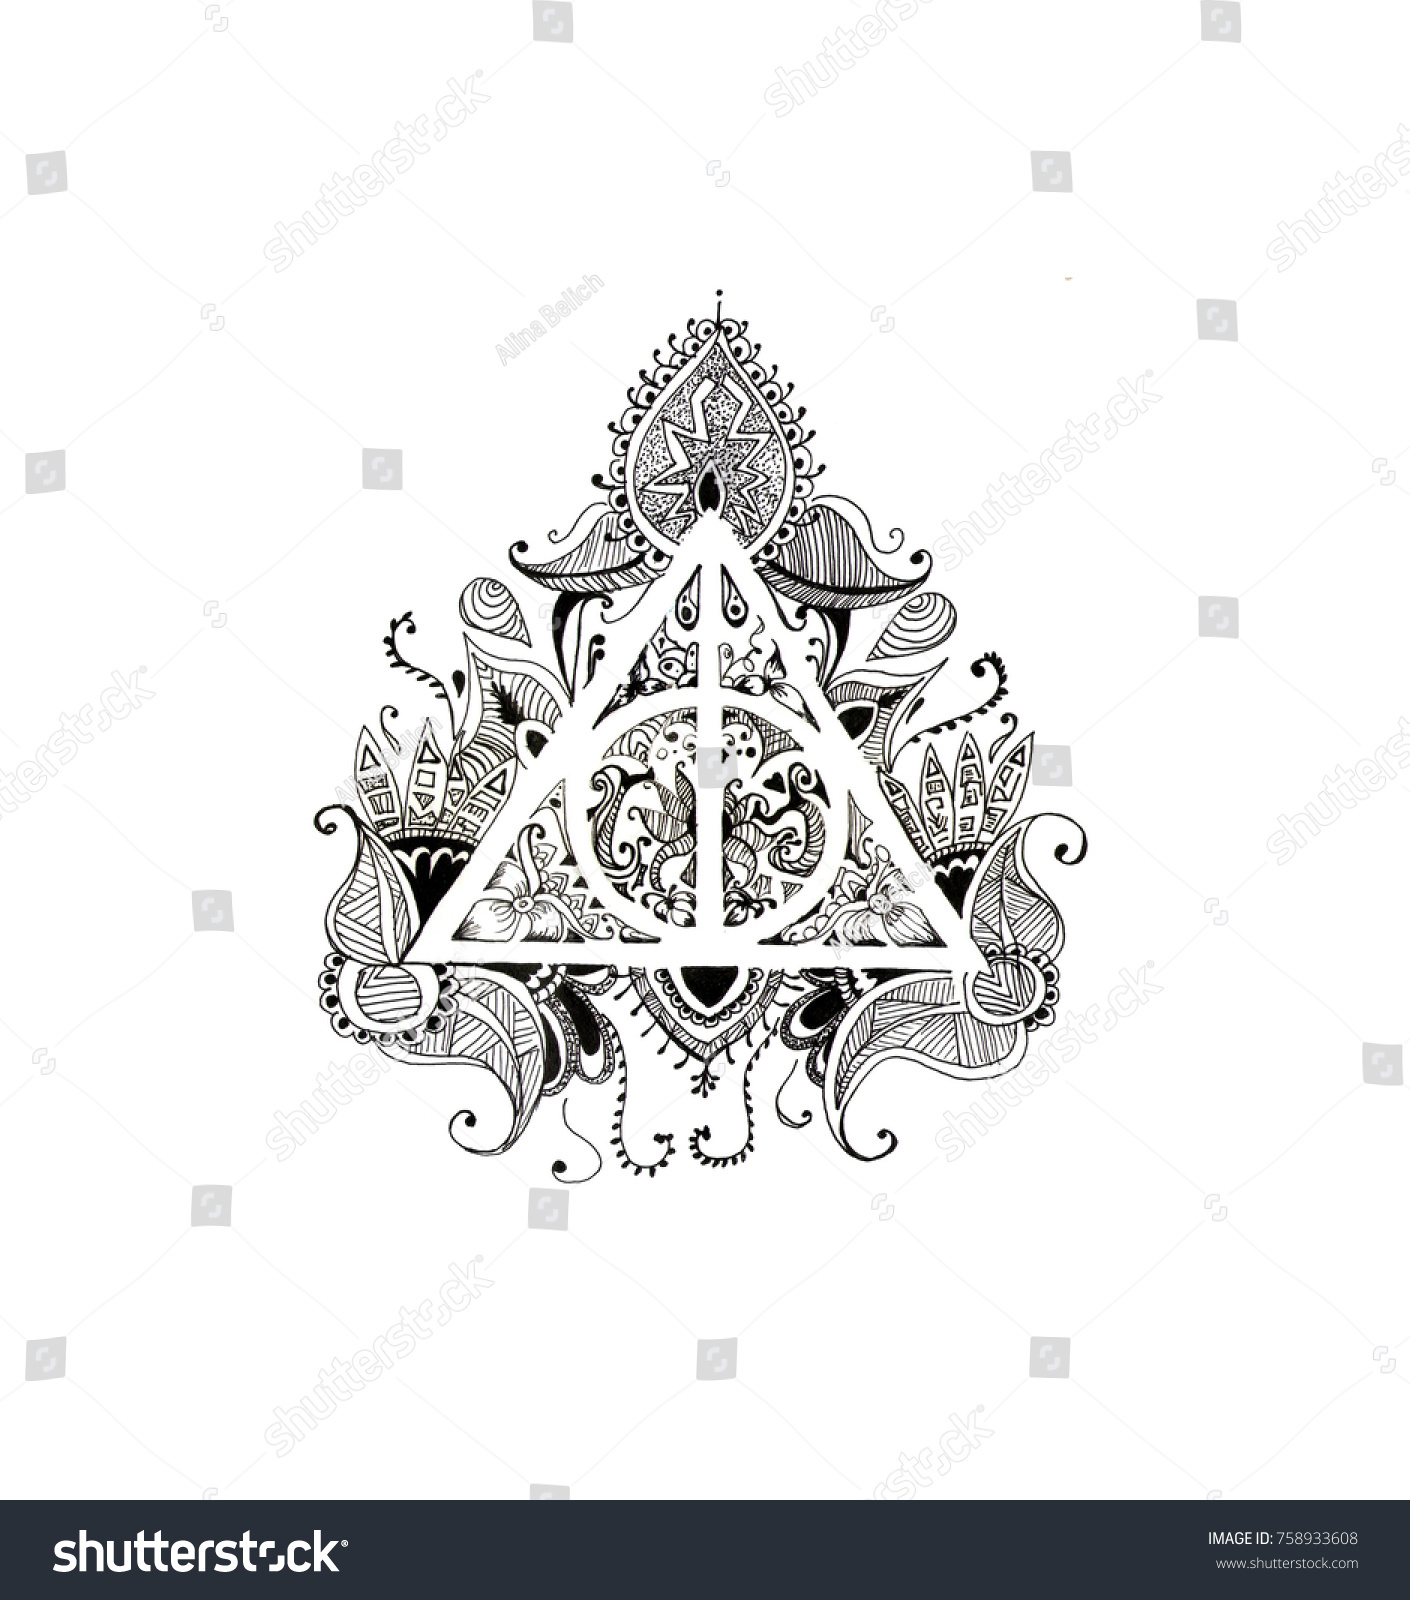 Graphic symbol deathly hallows black white stock illustration graphic symbol of the deathly hallows black and white with patterns on a white background biocorpaavc